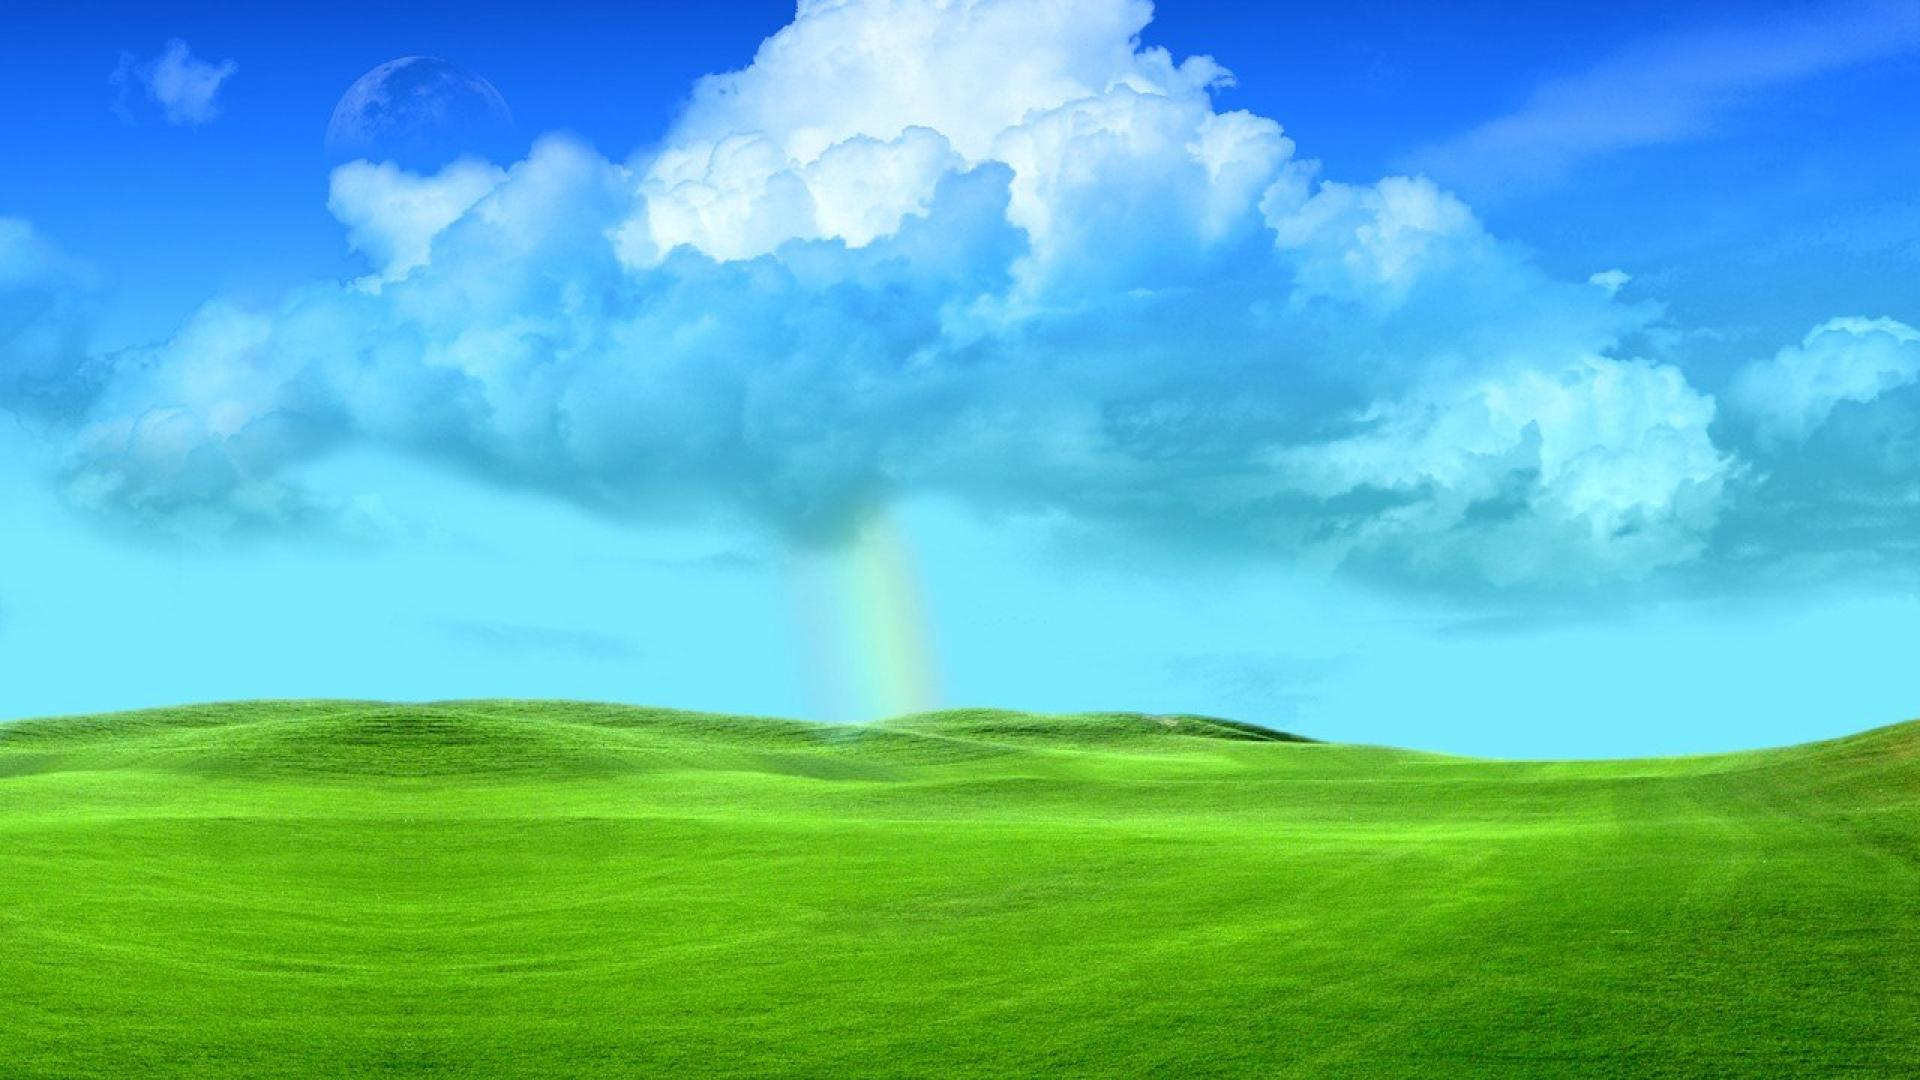 Sky Grass Wallpapers Free : Other Wallpaper - Petsprin